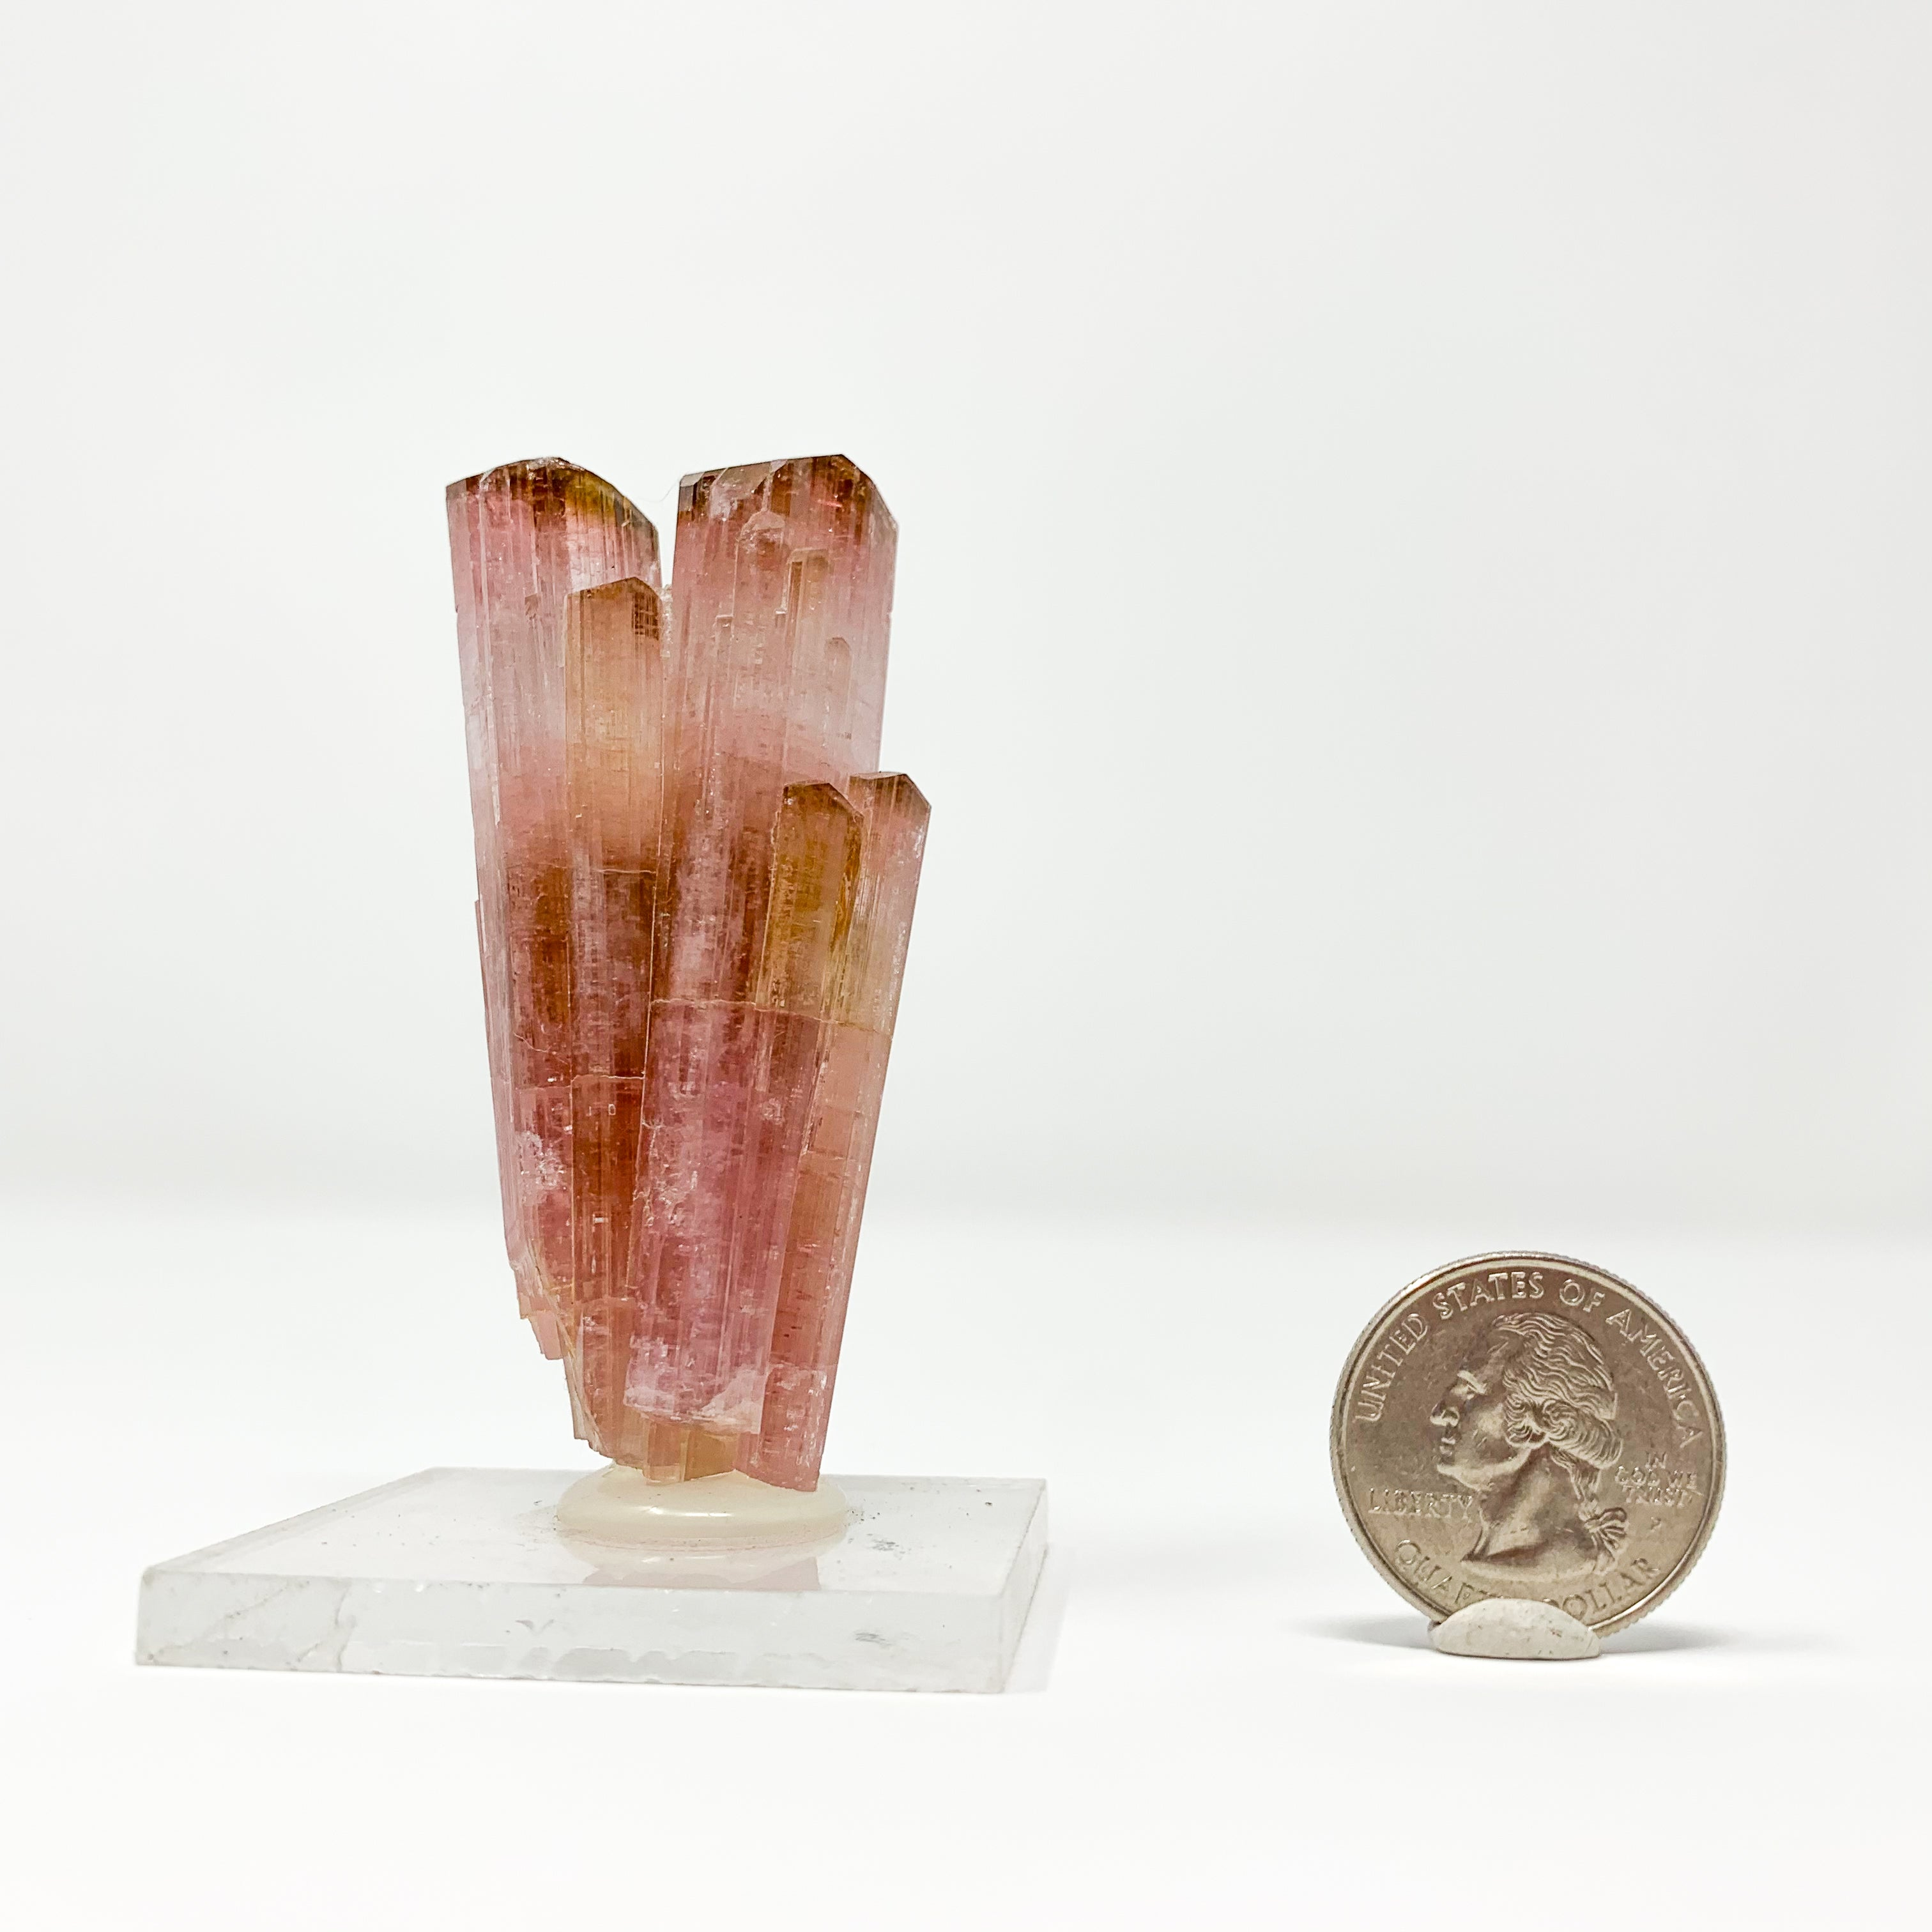 Pink Tourmaline from Laghman, Nuristan Province, Afghanistan